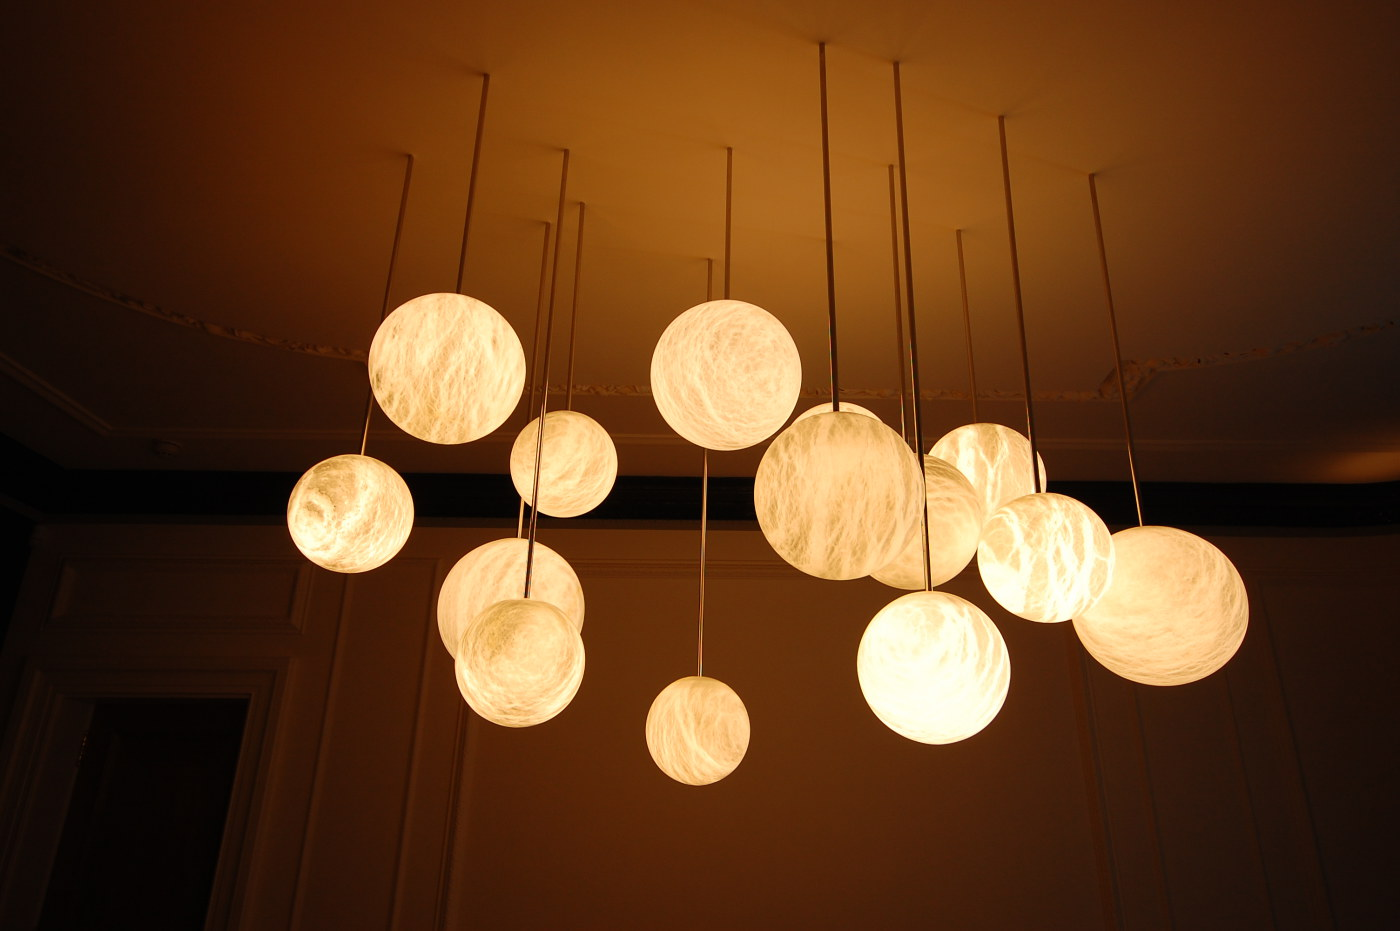 Portland Place Specialist Decoration Light Fixtures